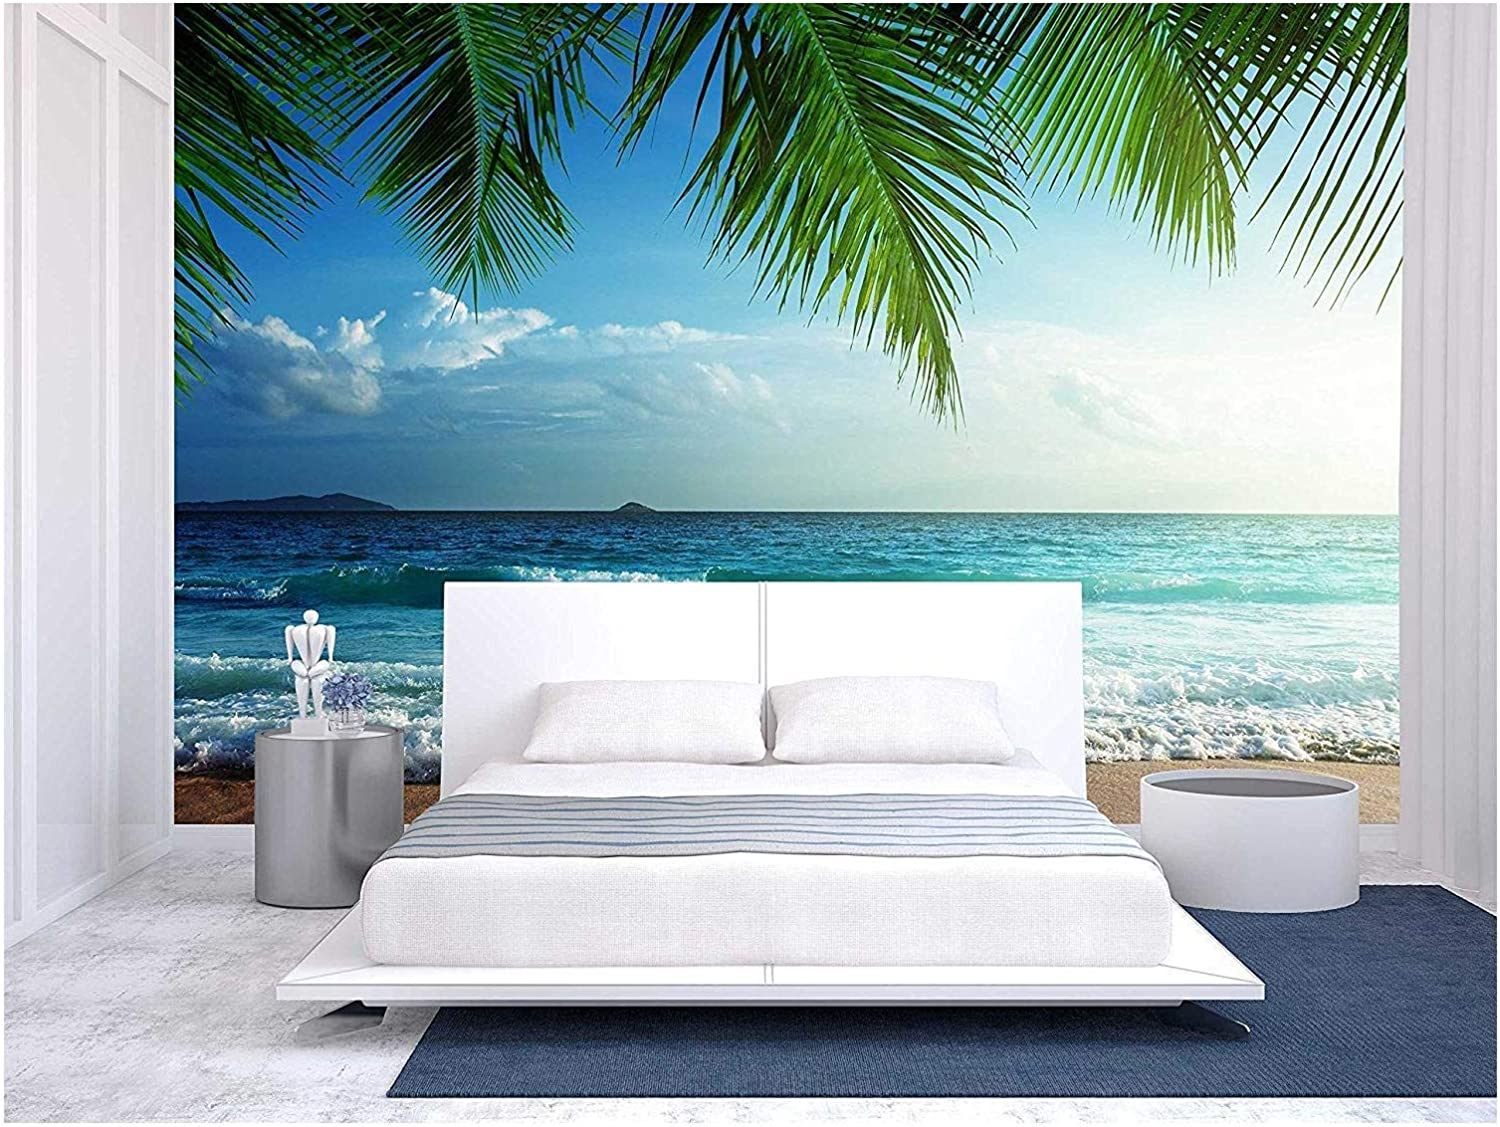 wall26 - Sunset on Seychelles Beach - Removable Wall Mural | Self-Adhesive Large Wallpaper - 66x96 inches